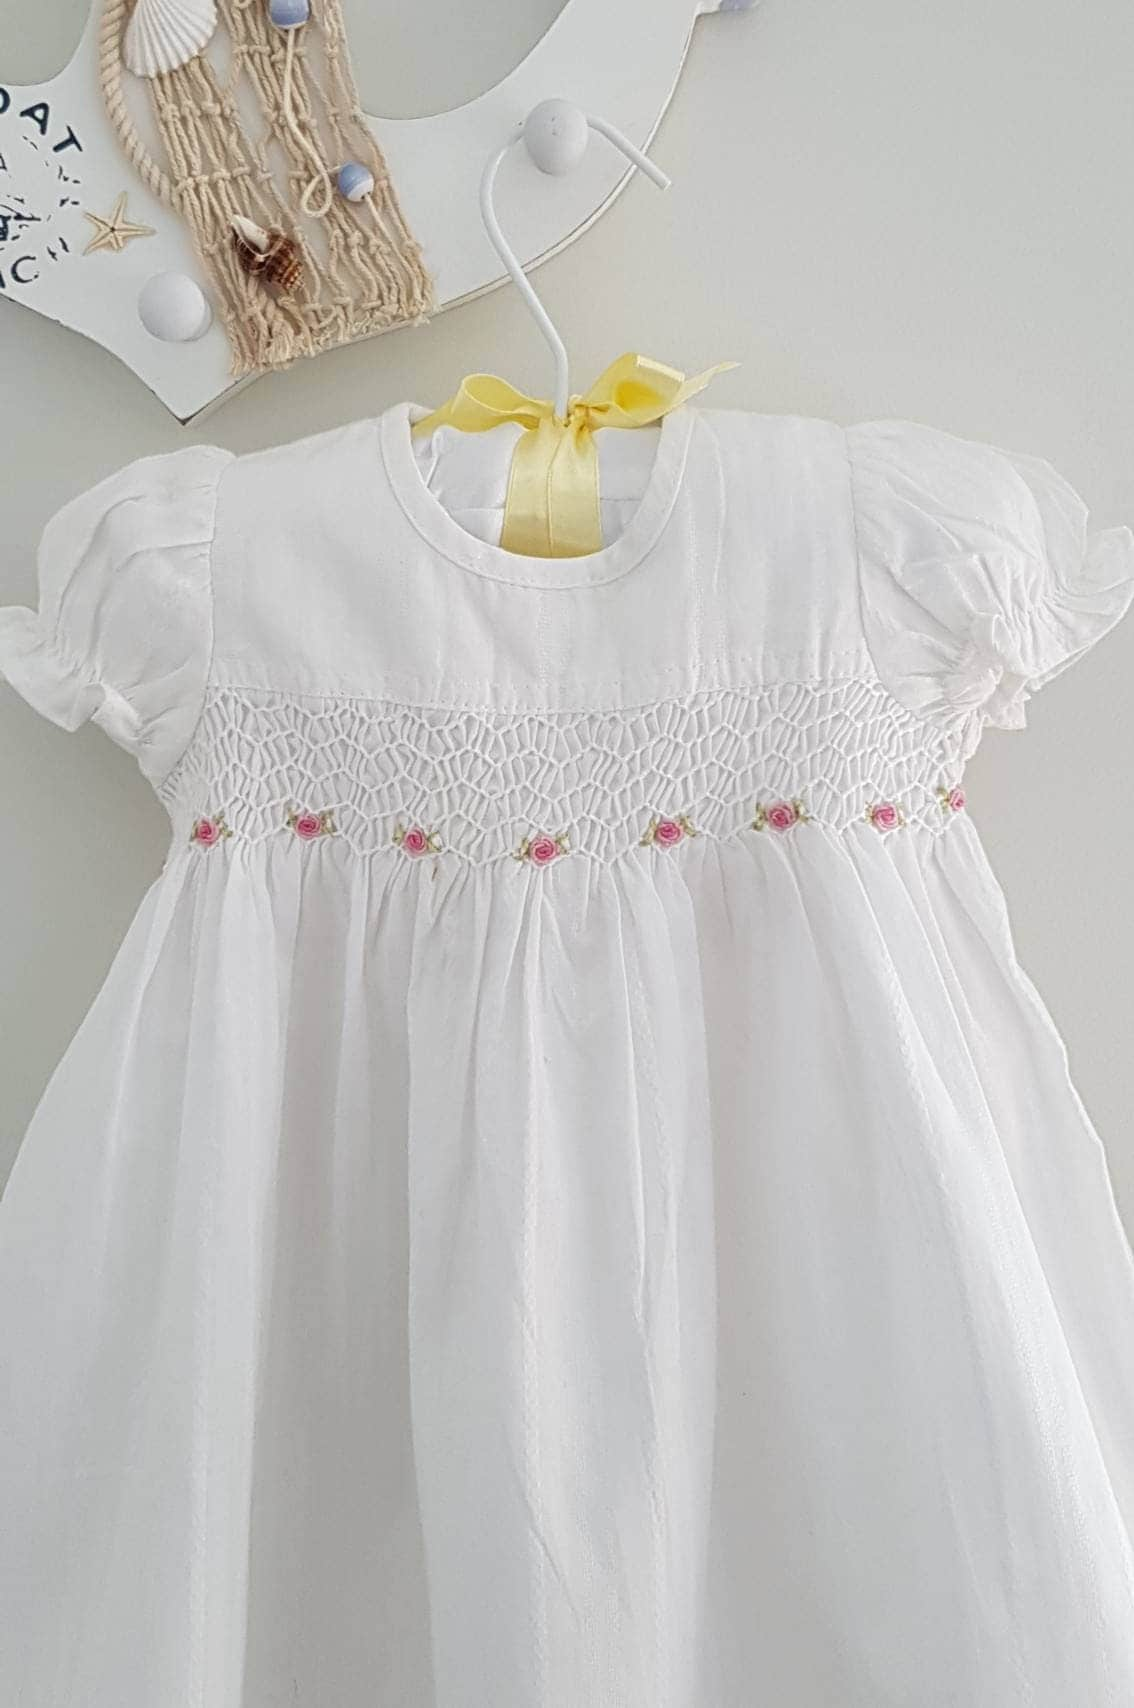 Hand Smocked Baby dress in white with hand embroidered roses